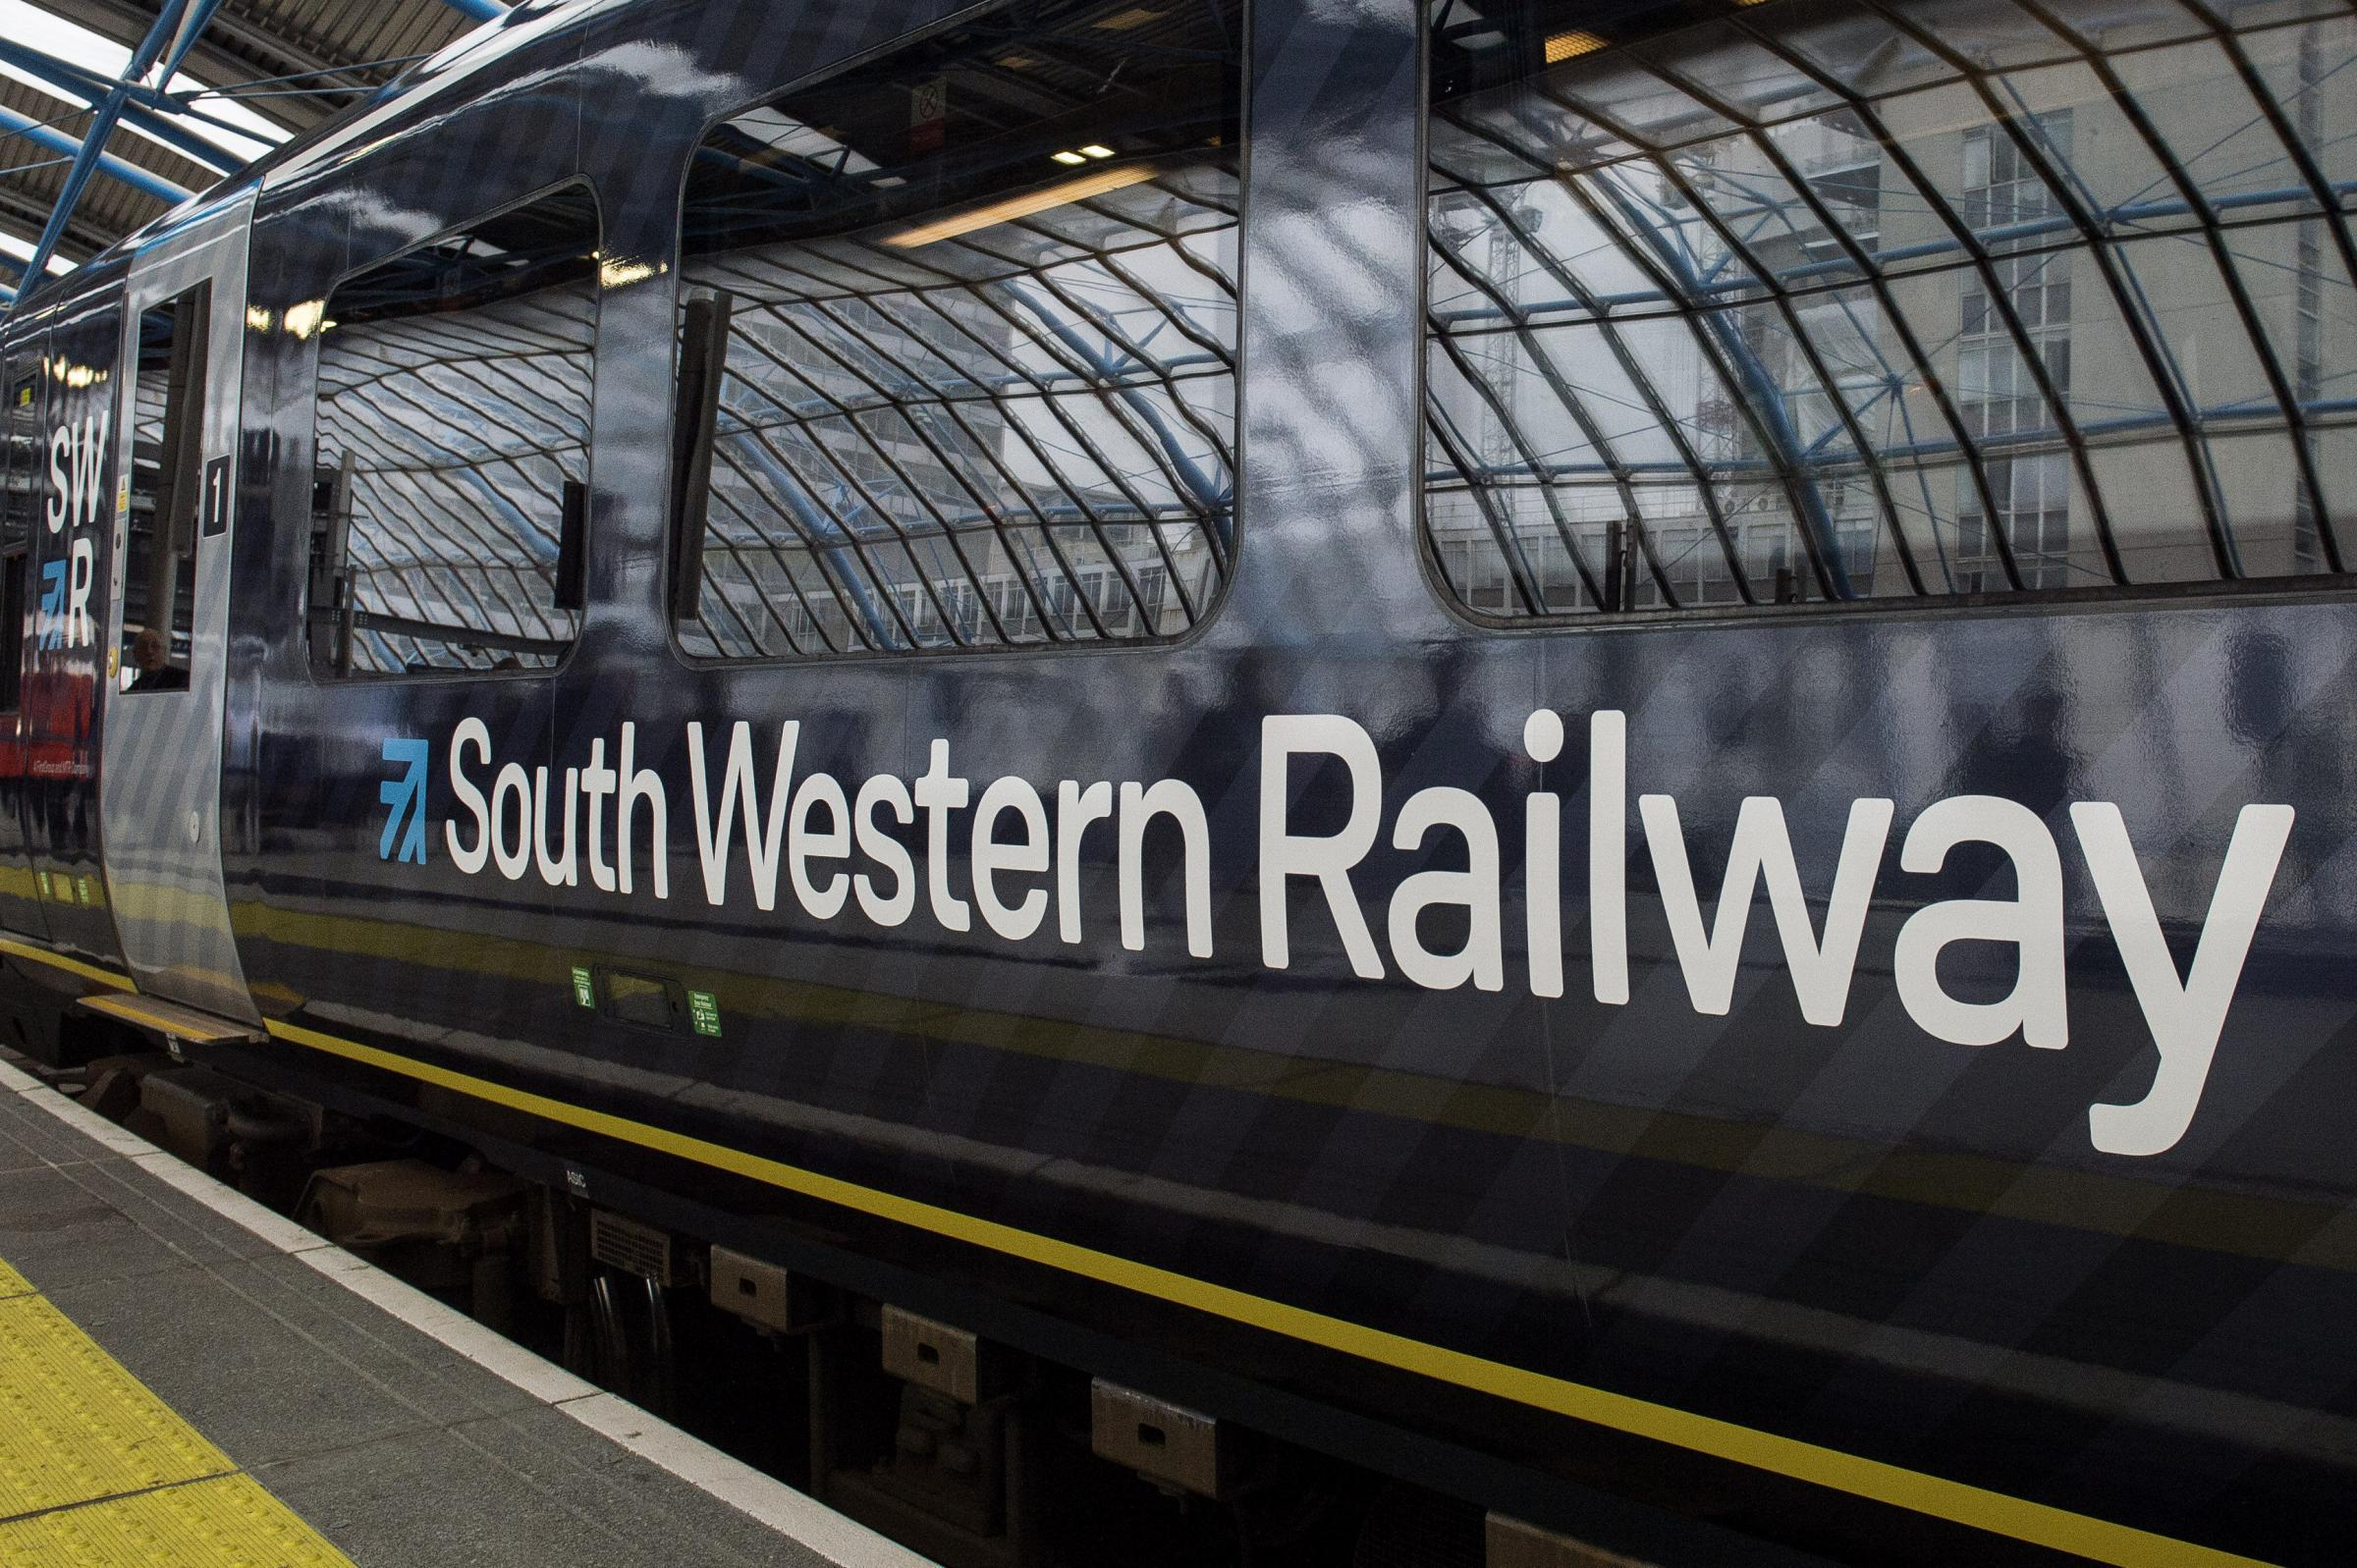 Commuters to benefit from new South Western Railway timetable